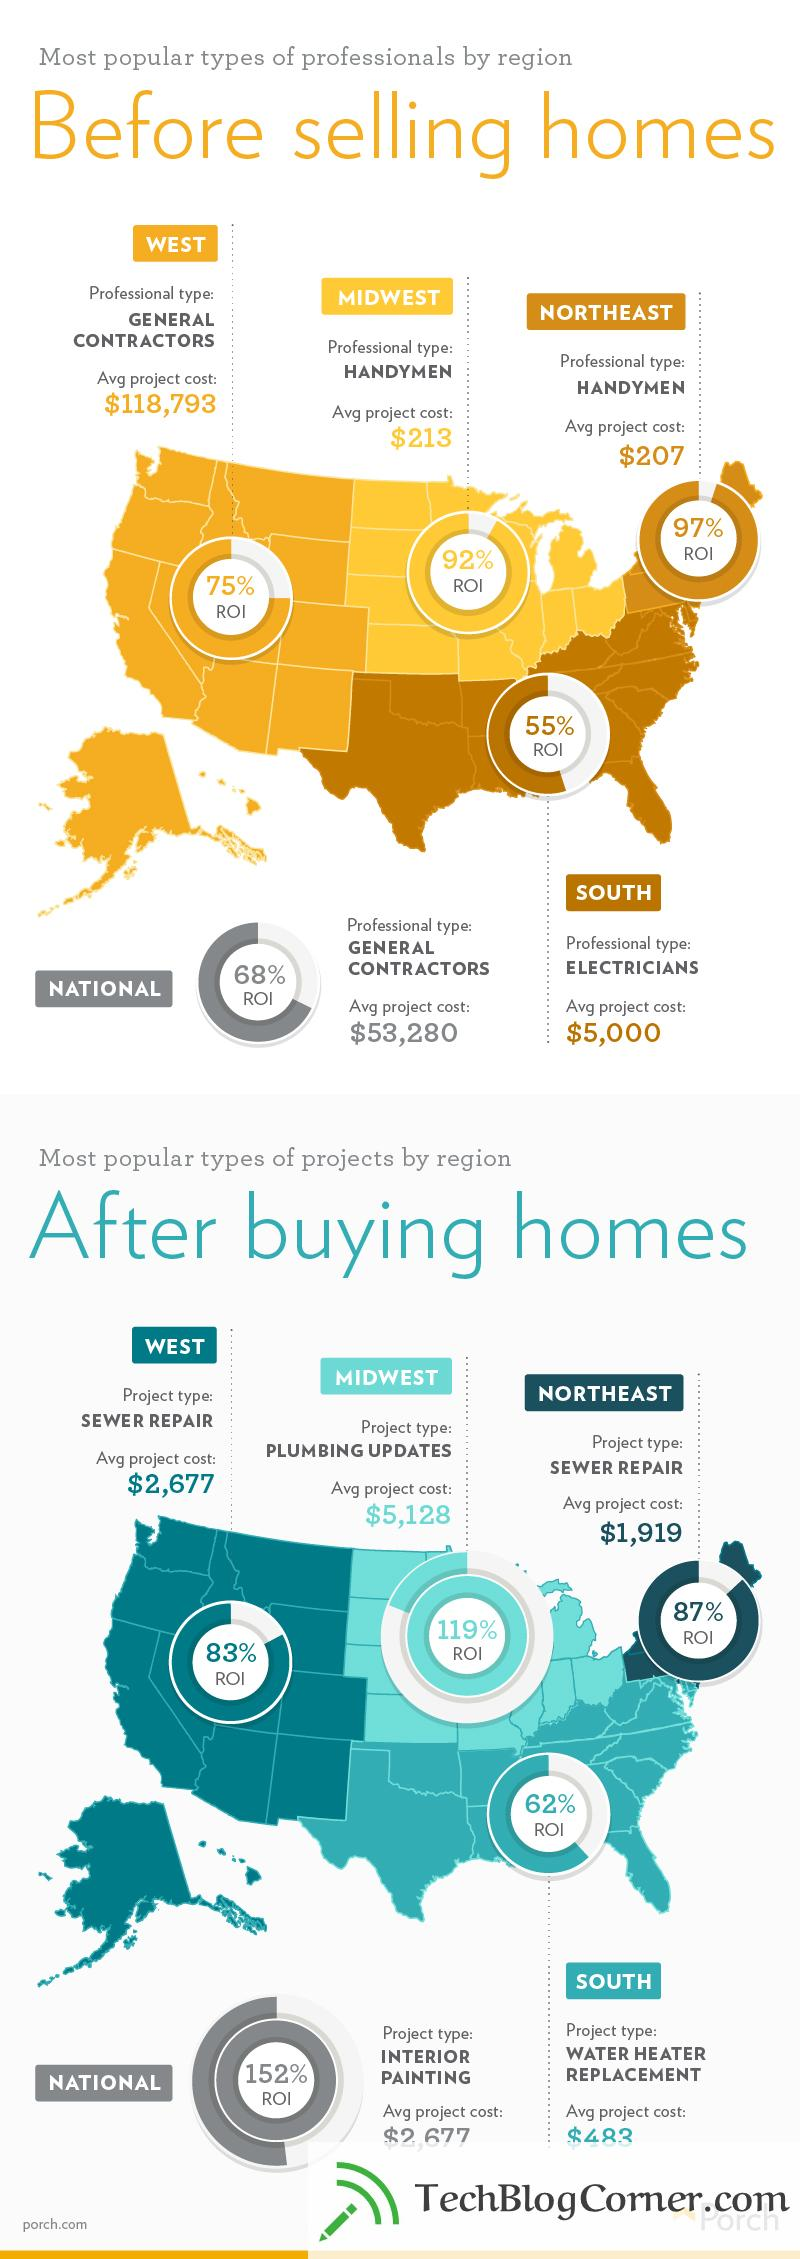 PorchDataTrends1stEditionInfographic-techblogcorner